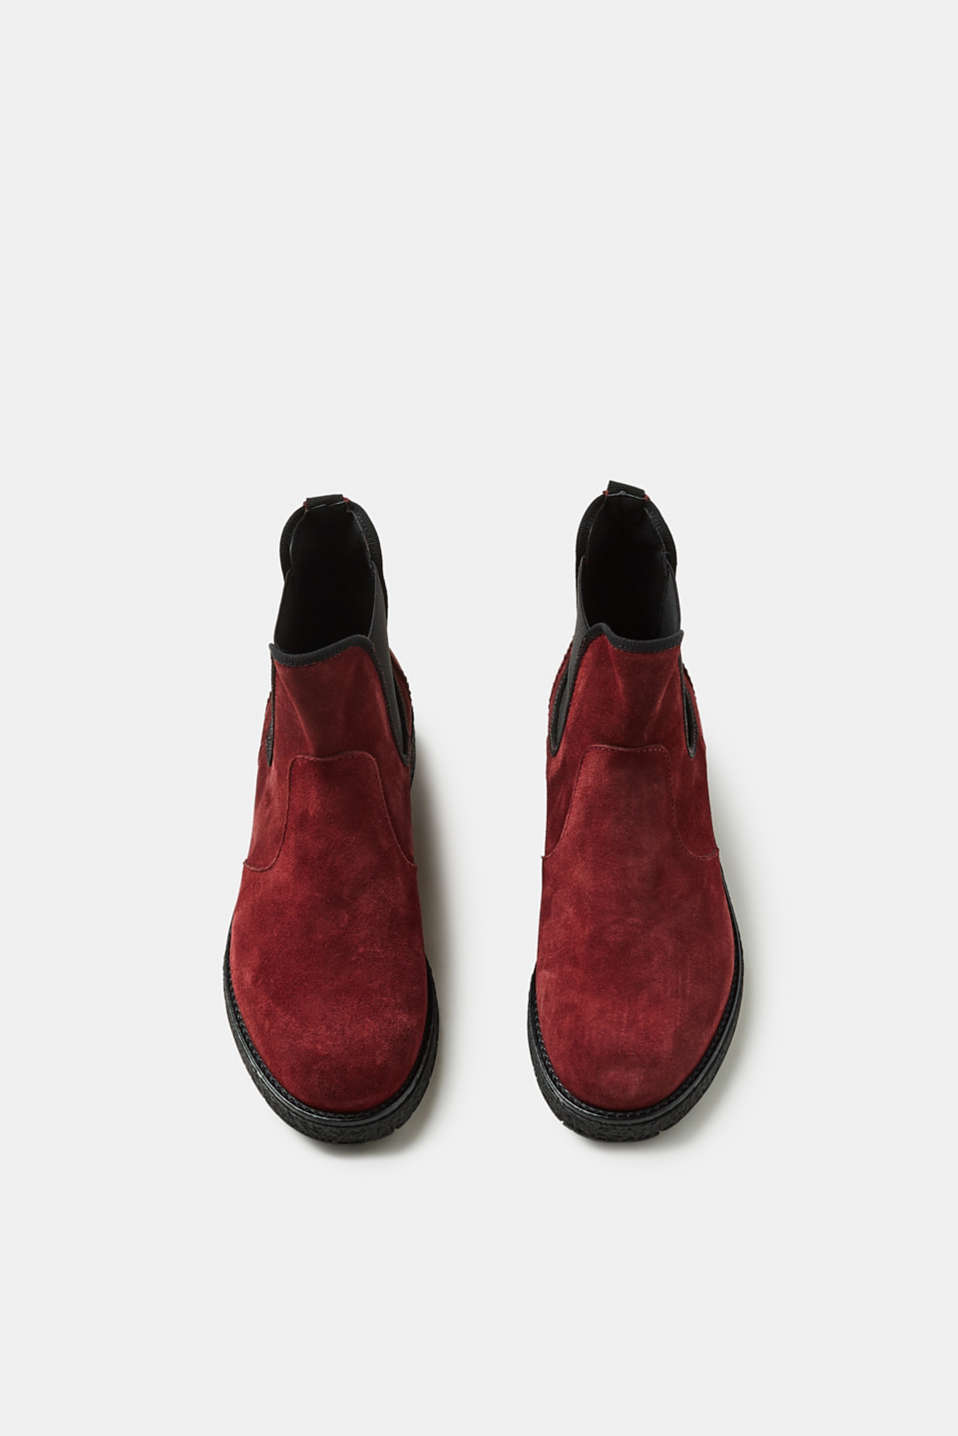 Chelsea boots with wedge sole